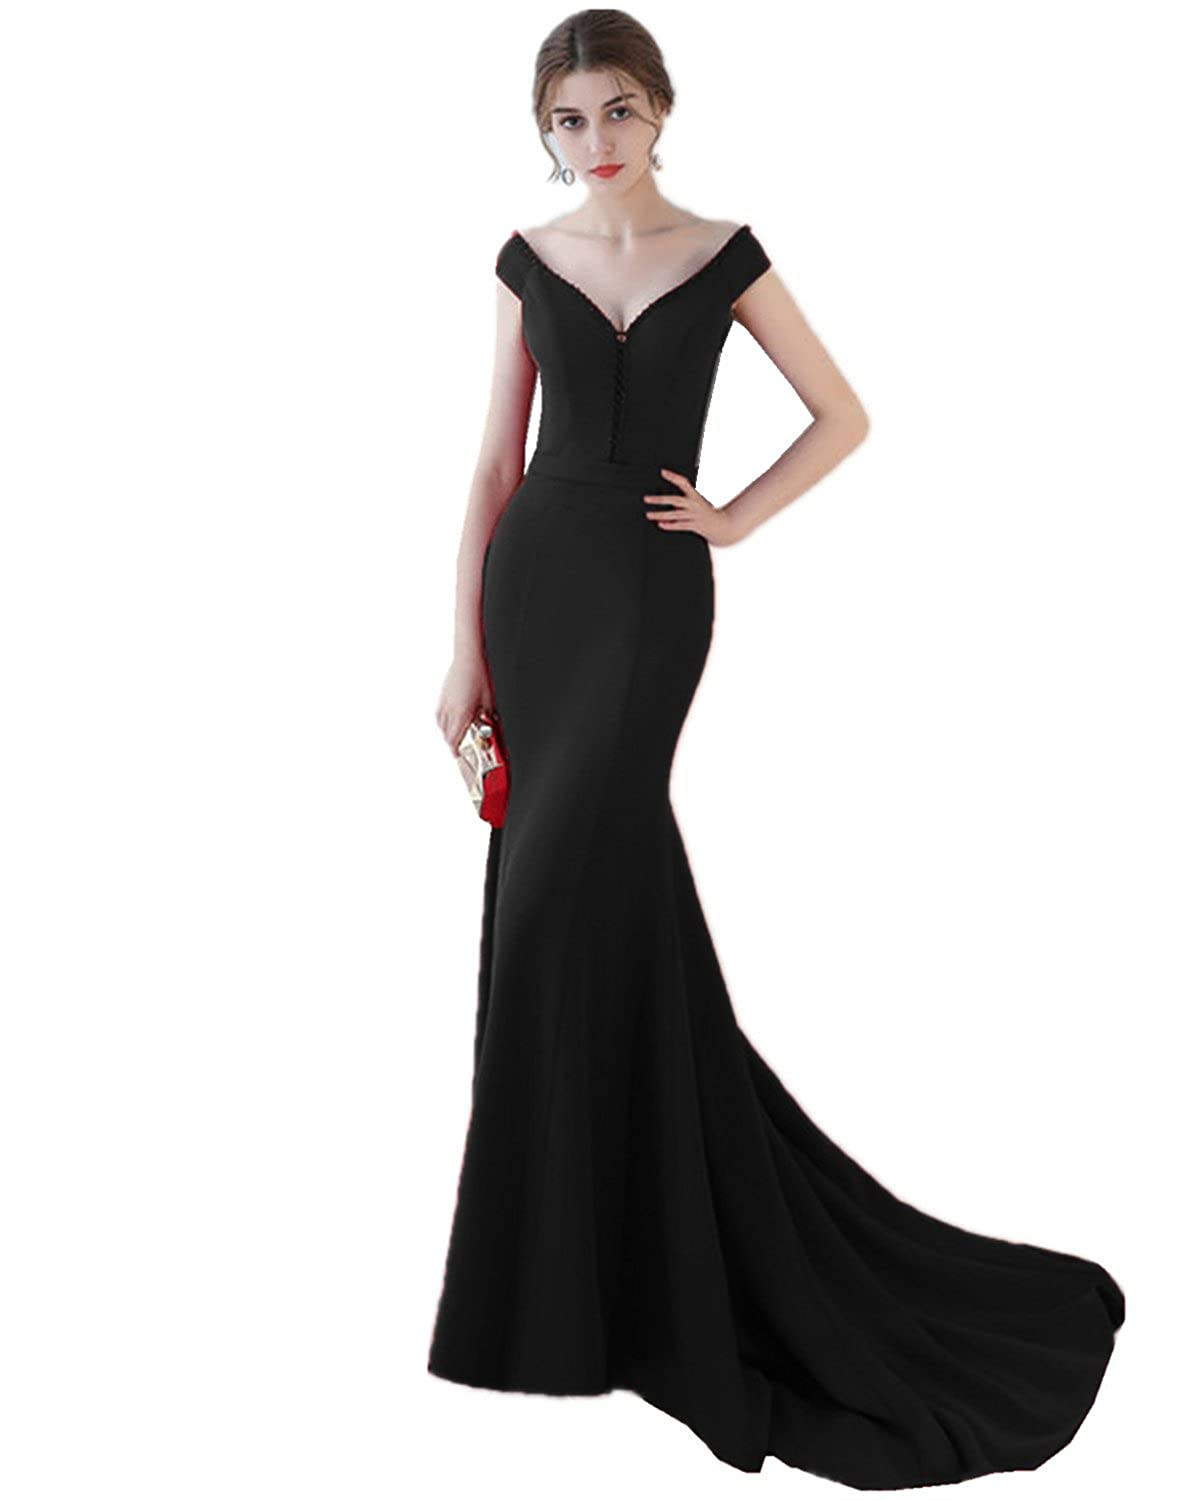 XSWPL Womens Elegant Mermaid Prom Dress Long Formal Evening Party Gowns at Amazon Womens Clothing store: